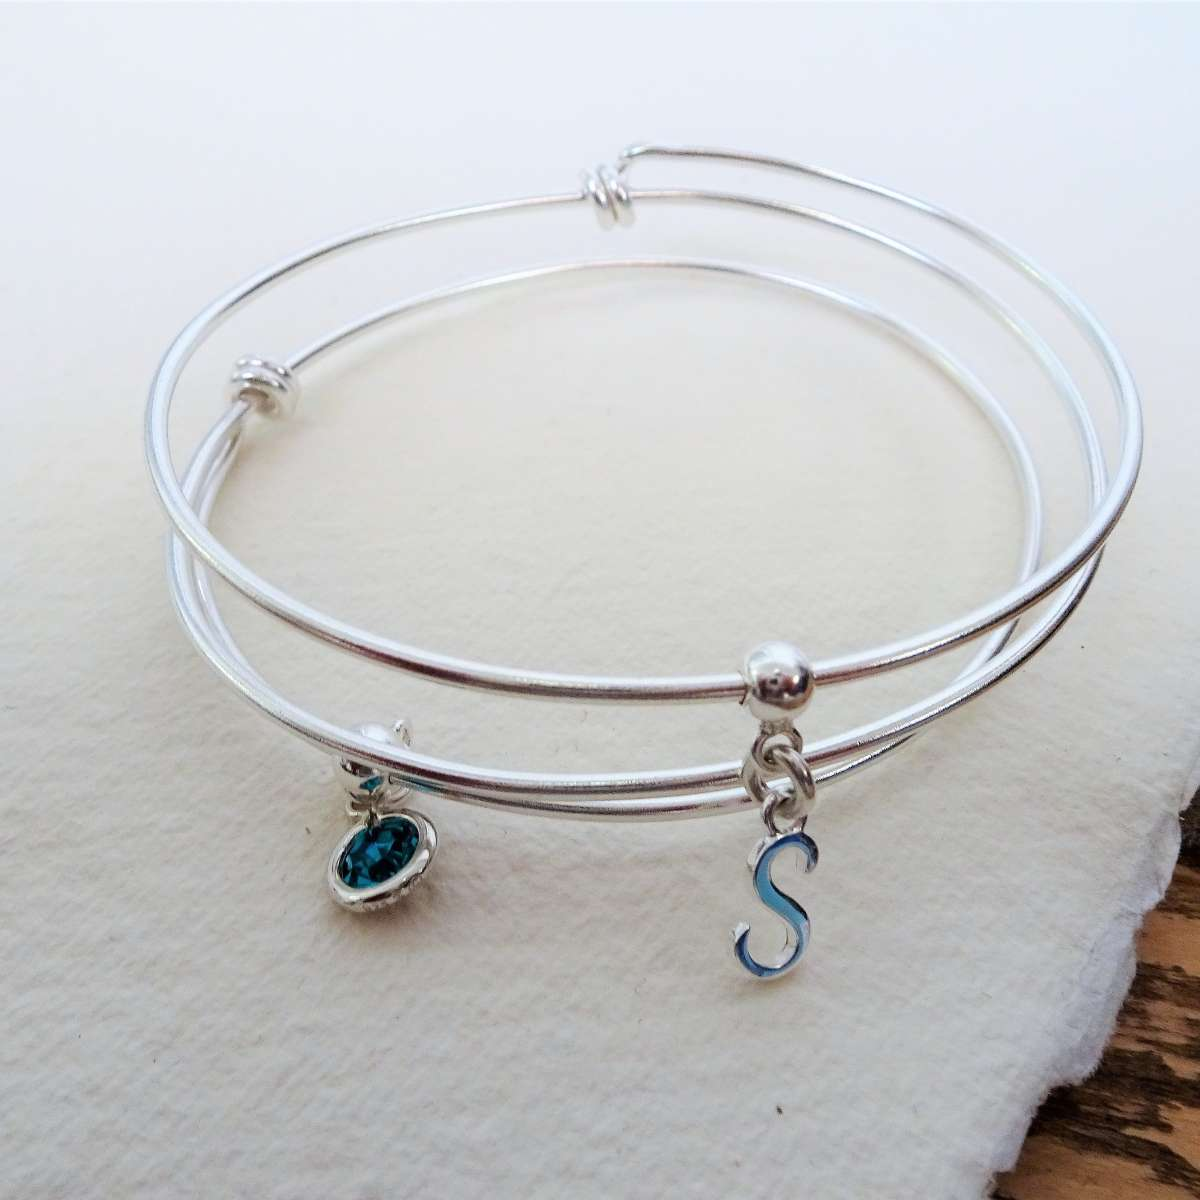 Alterative image for Sterling Silver Initial Letter & Round Birthstone Adjustable Charm Bangle